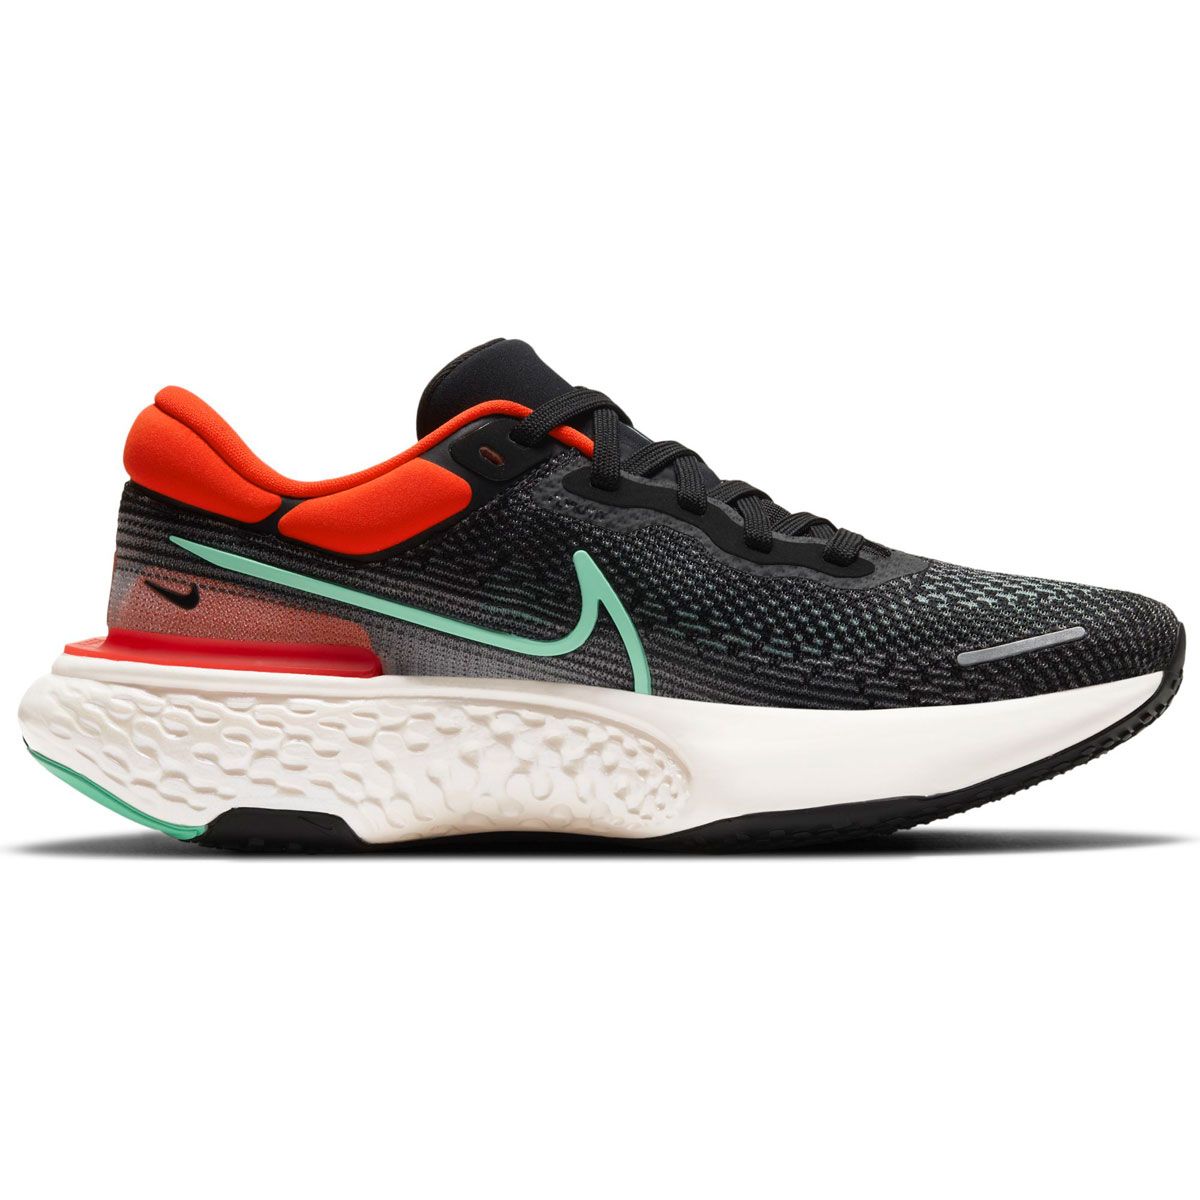 Men's Nike Zoomx Invincible Run FlyKnit Running Shoe - Color: Black/Green Glow/Chile Red - Size: 6 - Width: Regular, Black/Green Glow/Chile Red, large, image 1